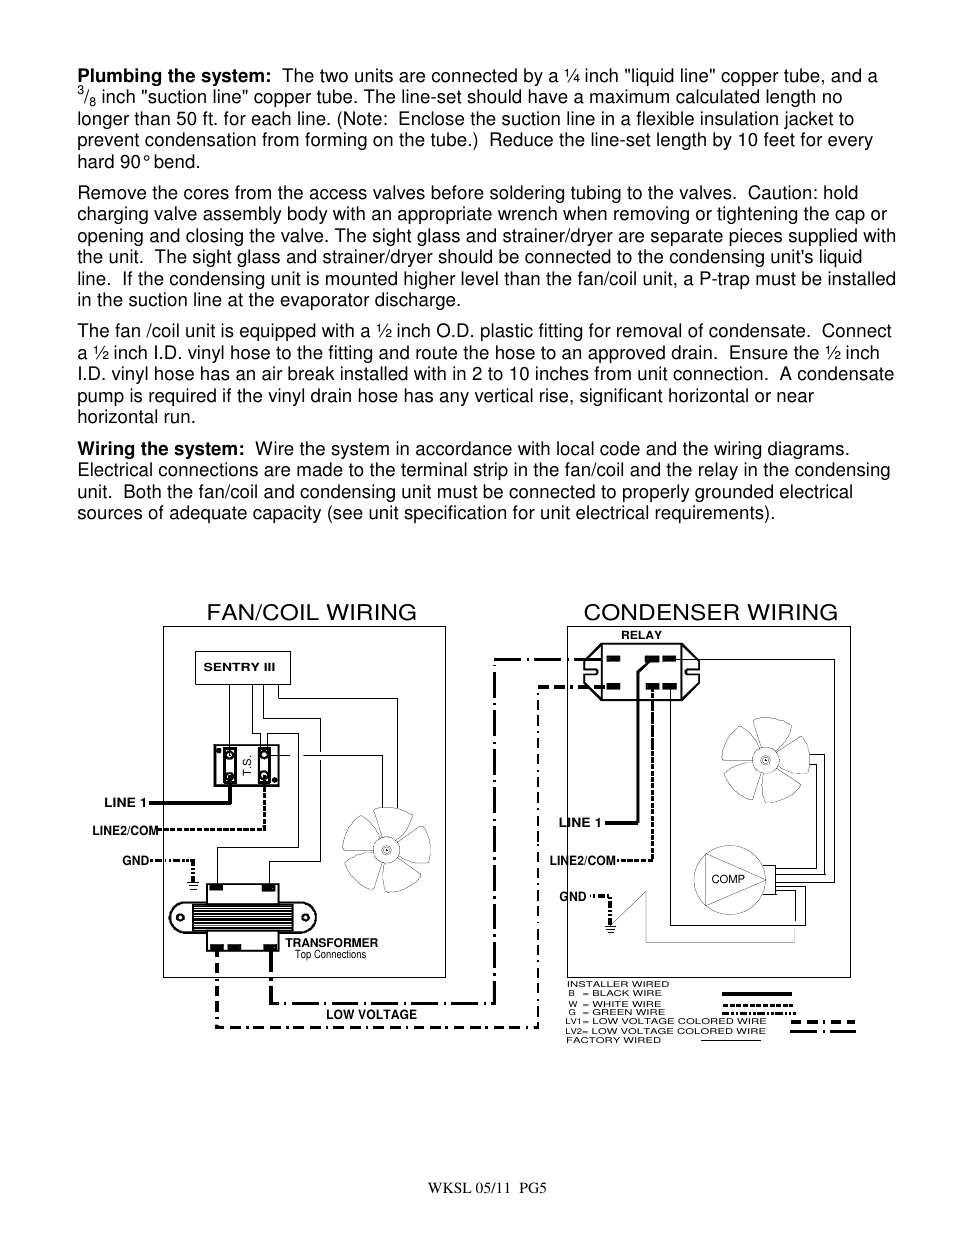 Fan/coil wiring condenser wiring | BREEZAIRE WKSL2200 User Manual | Page 5  / 8